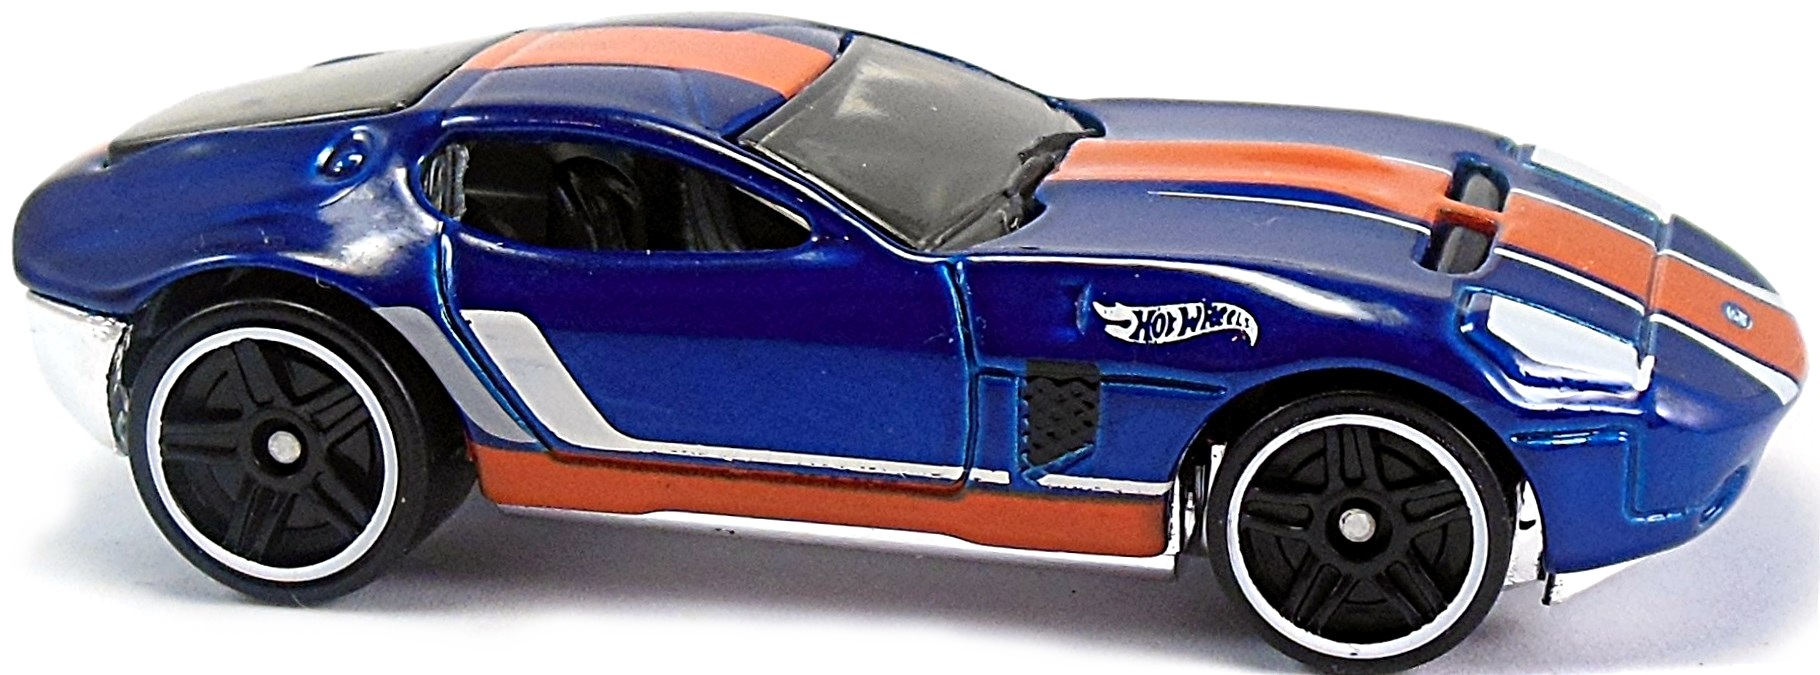 2016 Mystery Models Hot Wheels Newsletter